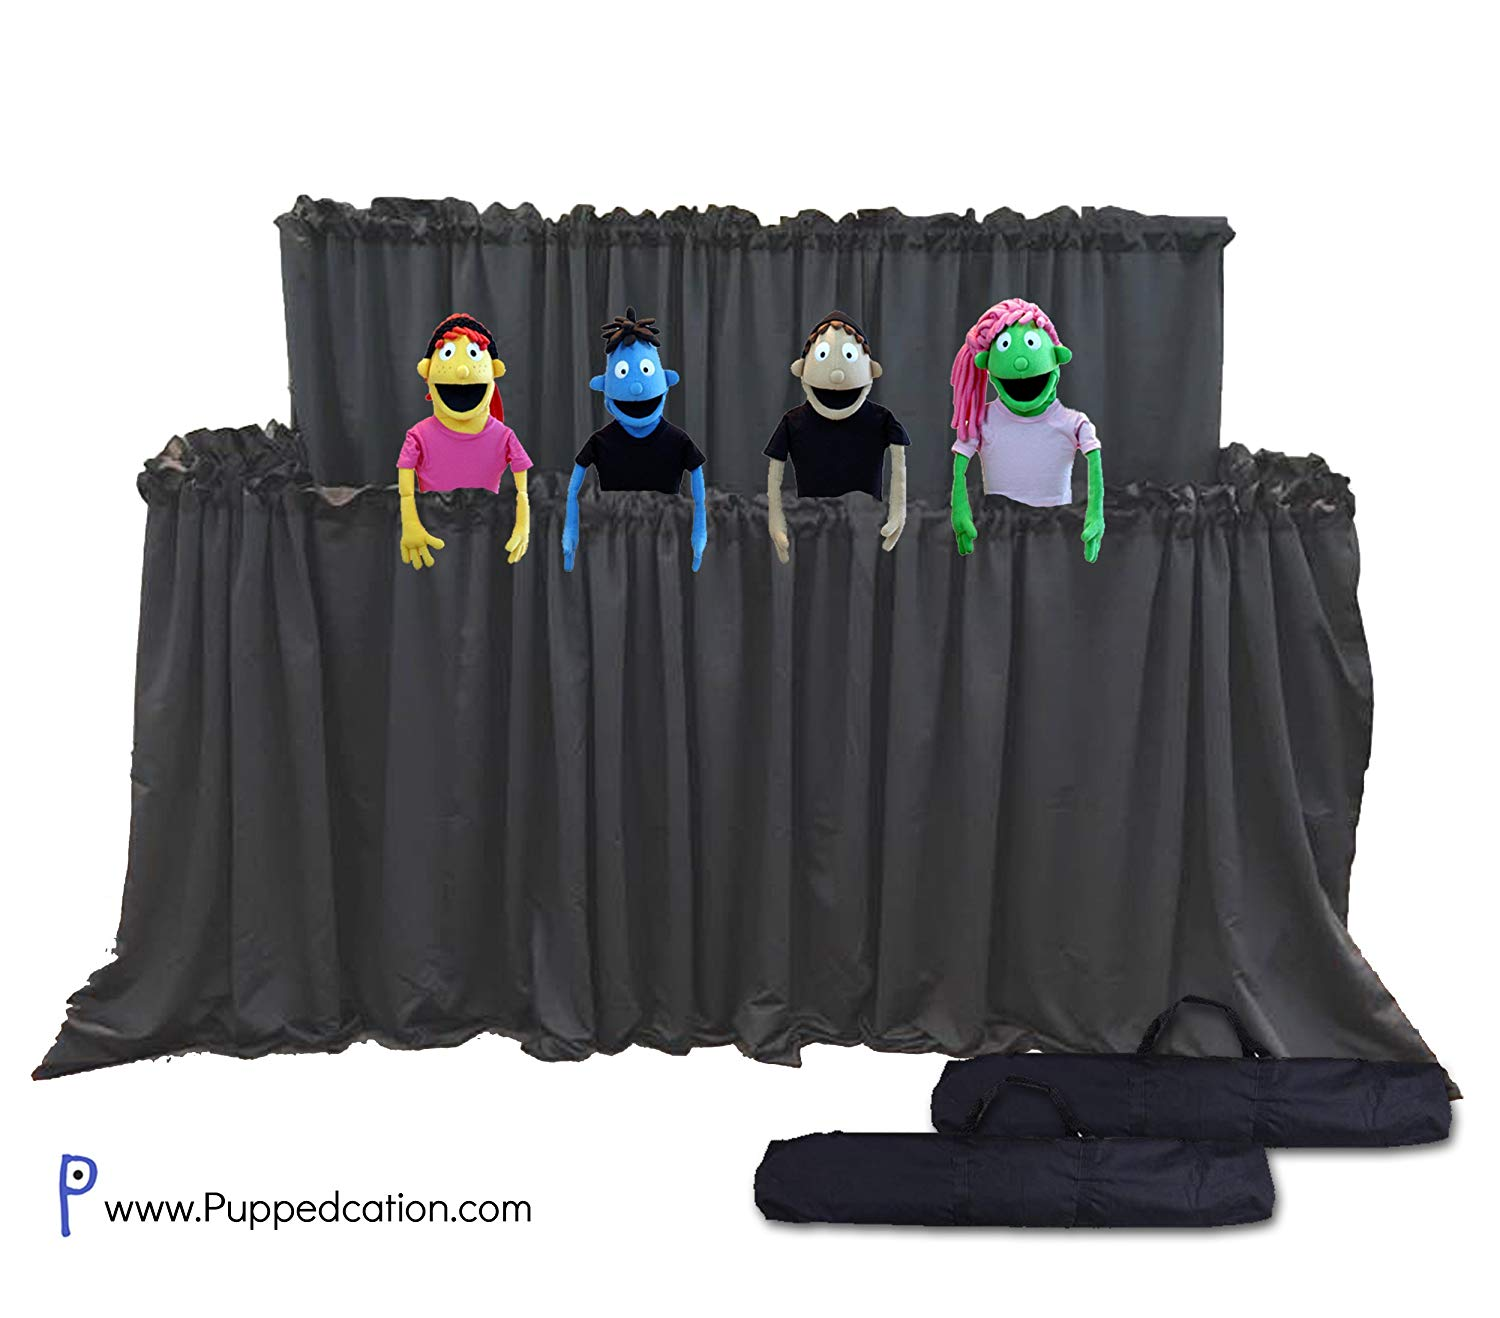 d11a948c Get Quotations · Classroom Puppet Stage XL - 2 Tier Portable Tripod Puppet  Theater w/BAG | Stage